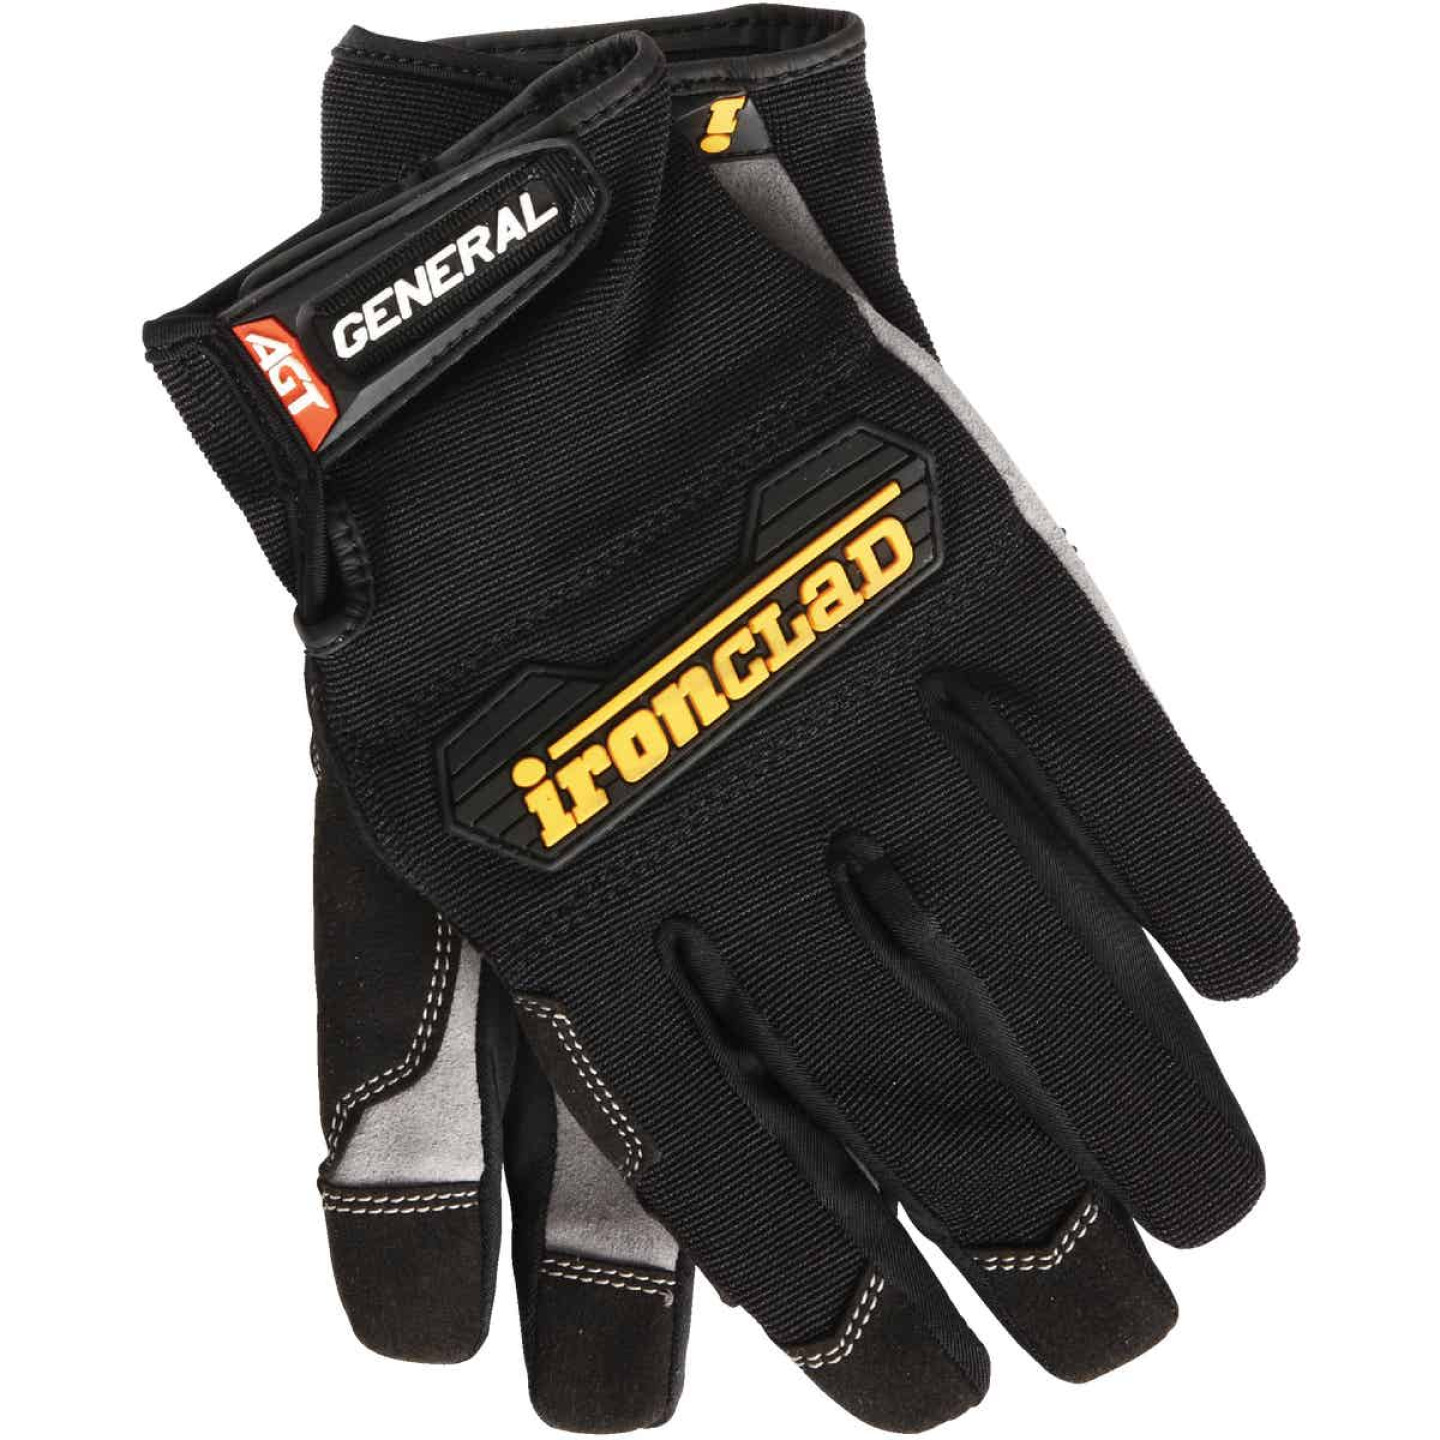 Ironclad General Utility Men's Large Synthetic Suede High Performance Glove Image 1